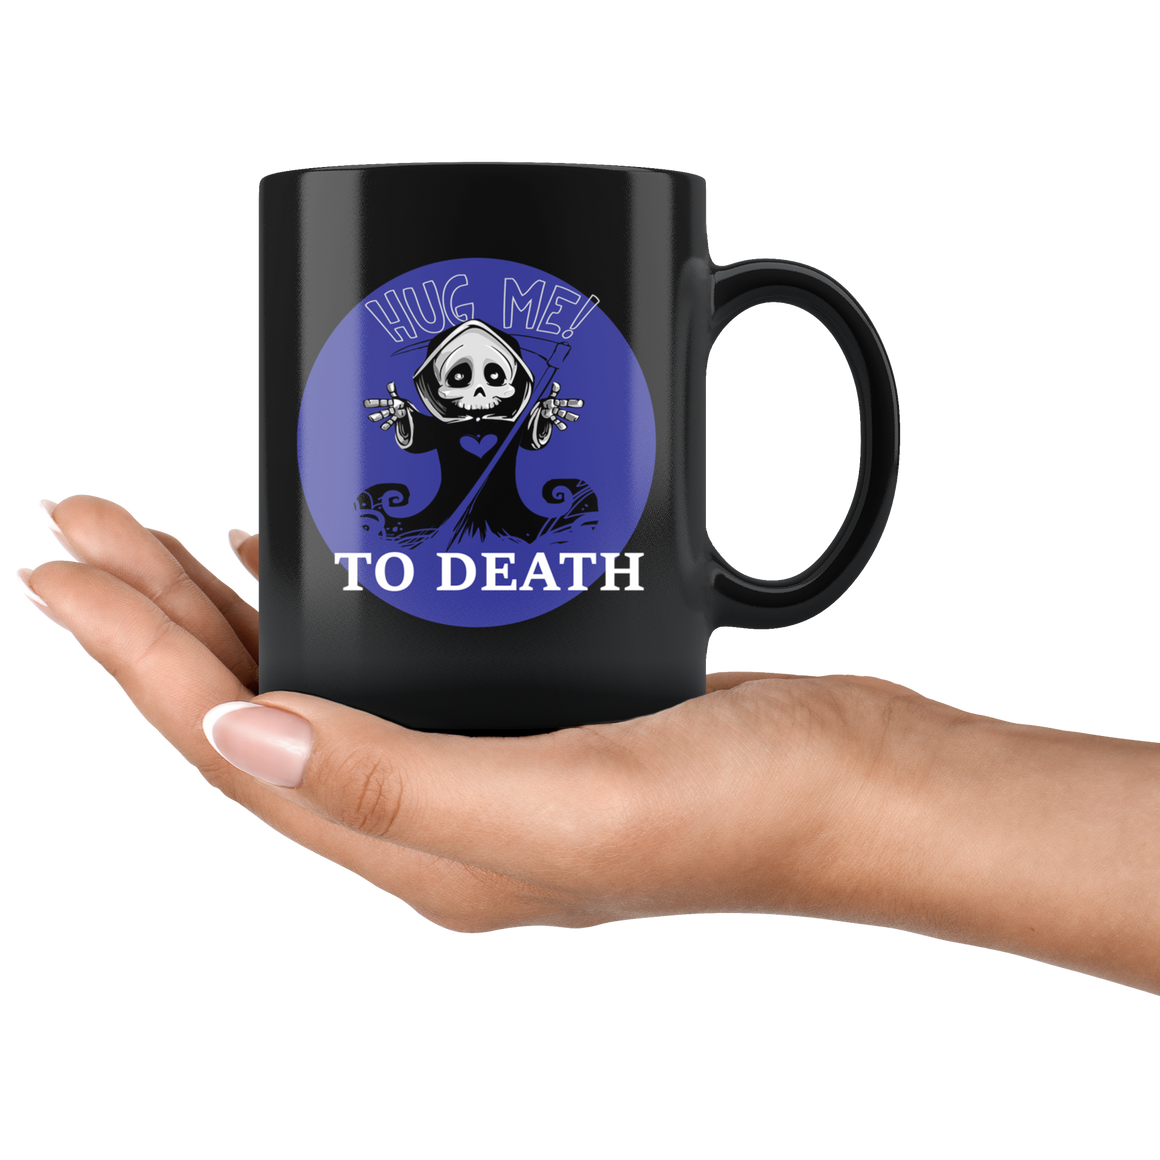 Cute Hug Me to Death Halloween Coffee or Tea Mug